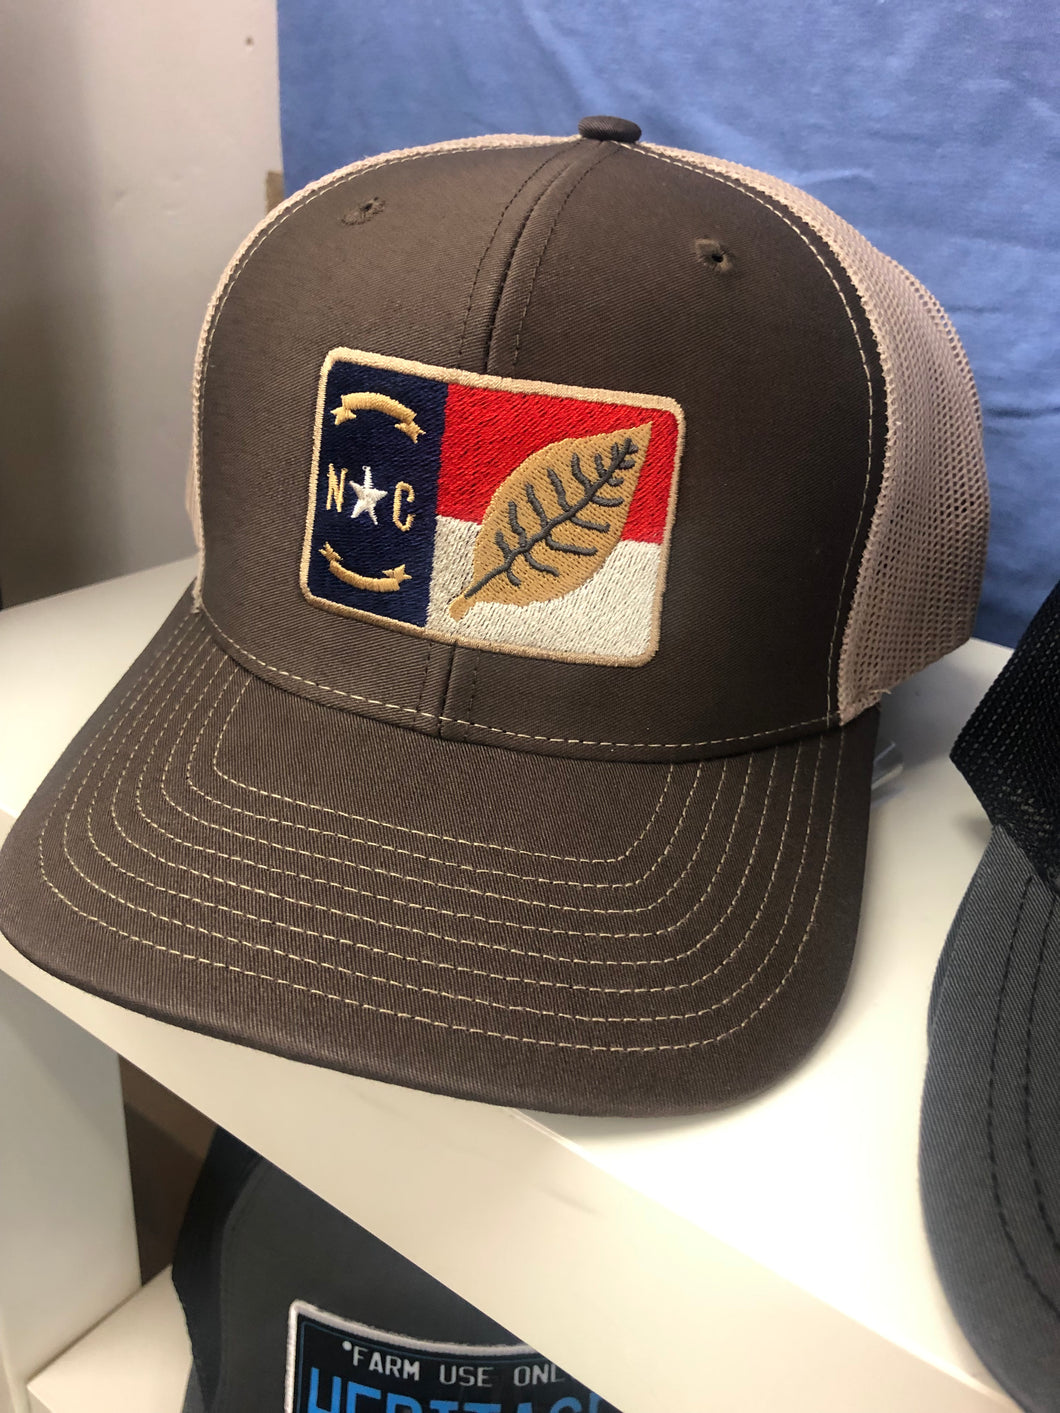 North Carolina Flag/Tobacco Leaf Hat